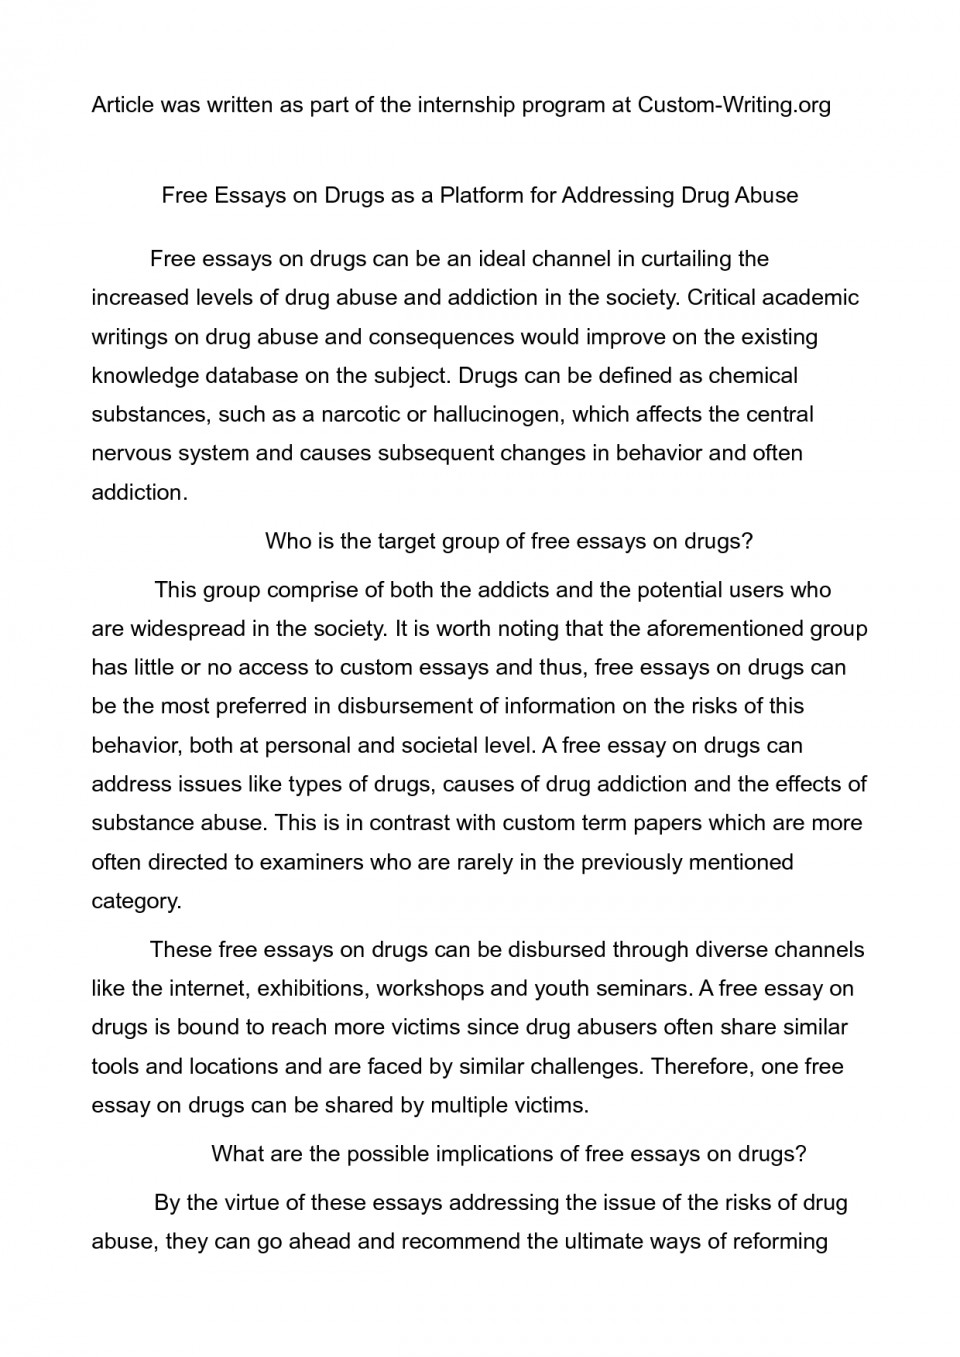 009 Argumentative Essay About Drugs Amazing Template Sample 6th Grade Conclusion 960